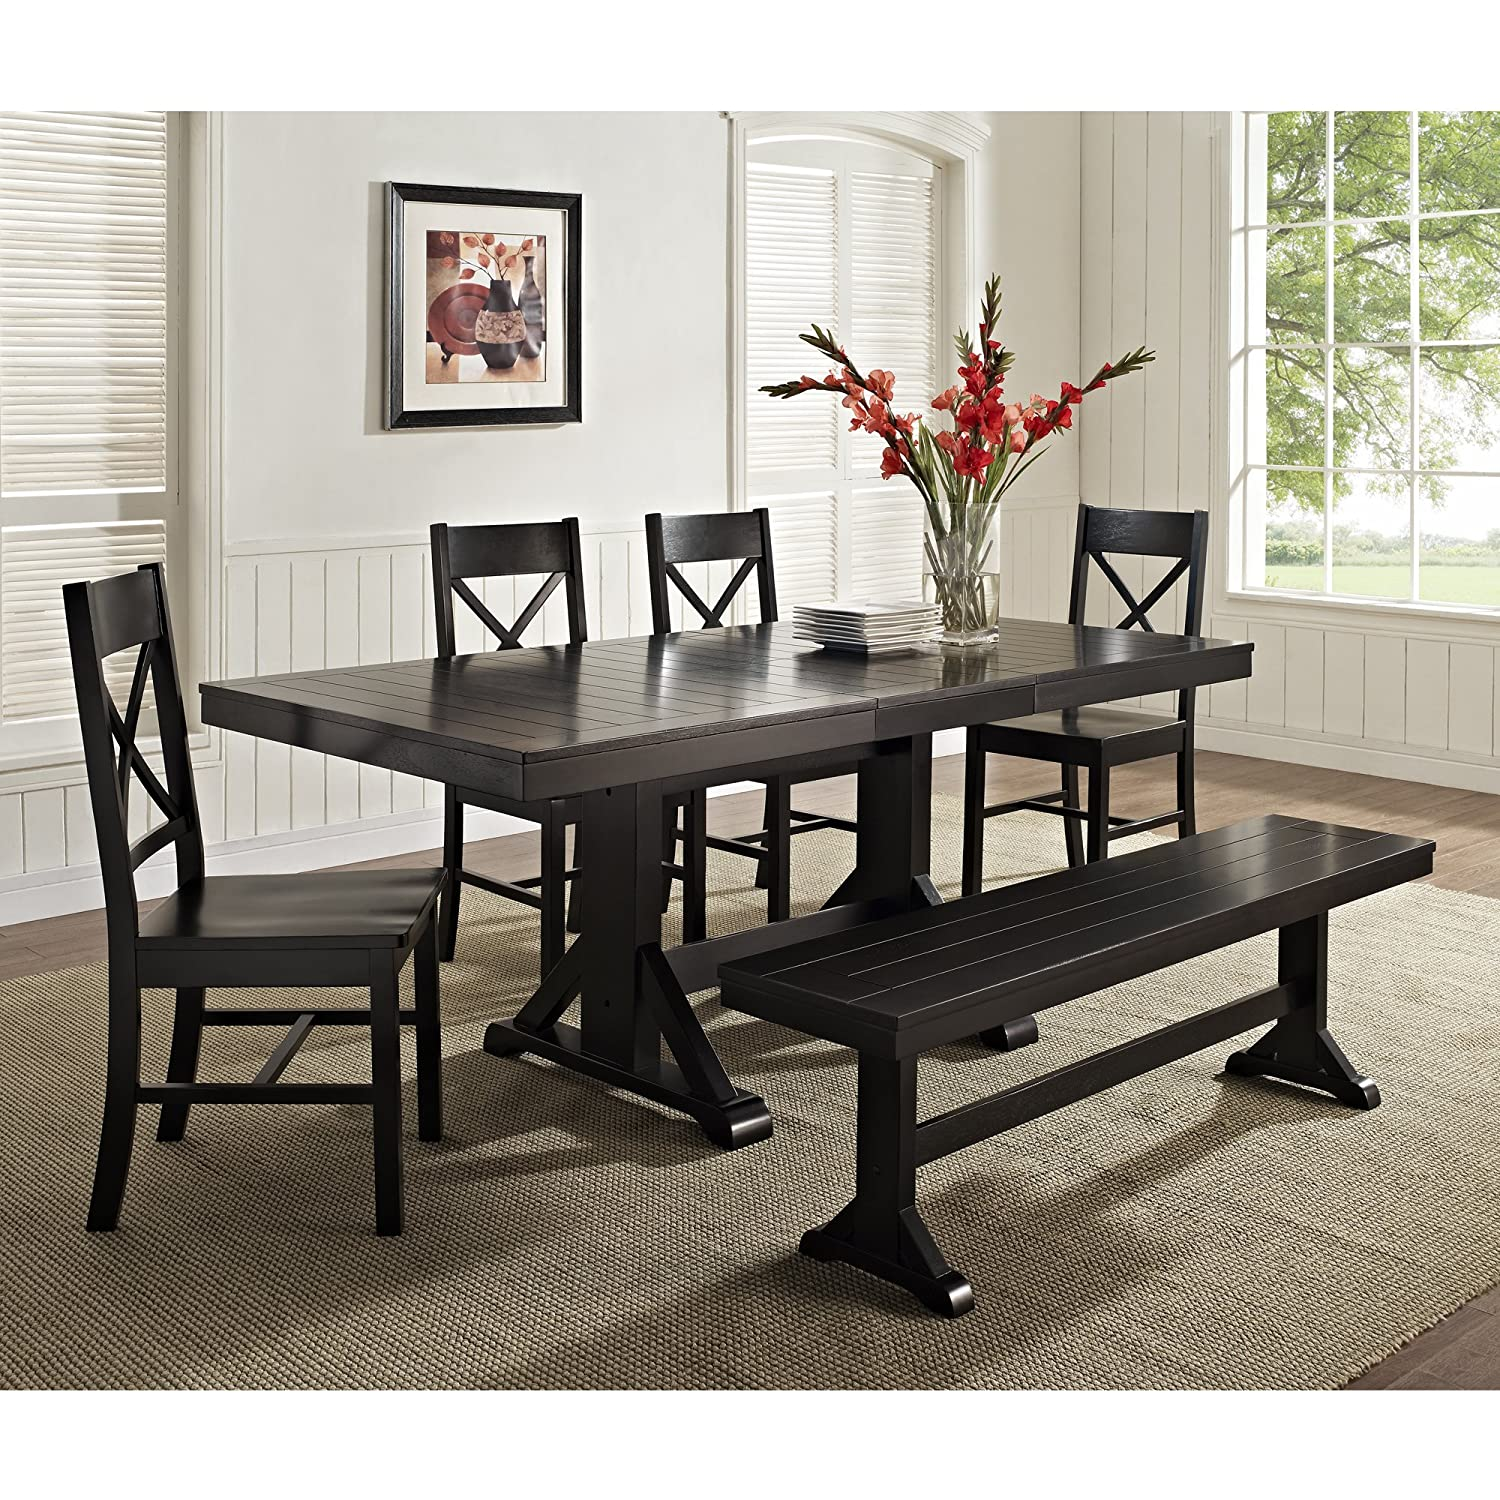 Amazon.com: WE Furniture Solid Wood Black Dining Bench: Kitchen & Dining